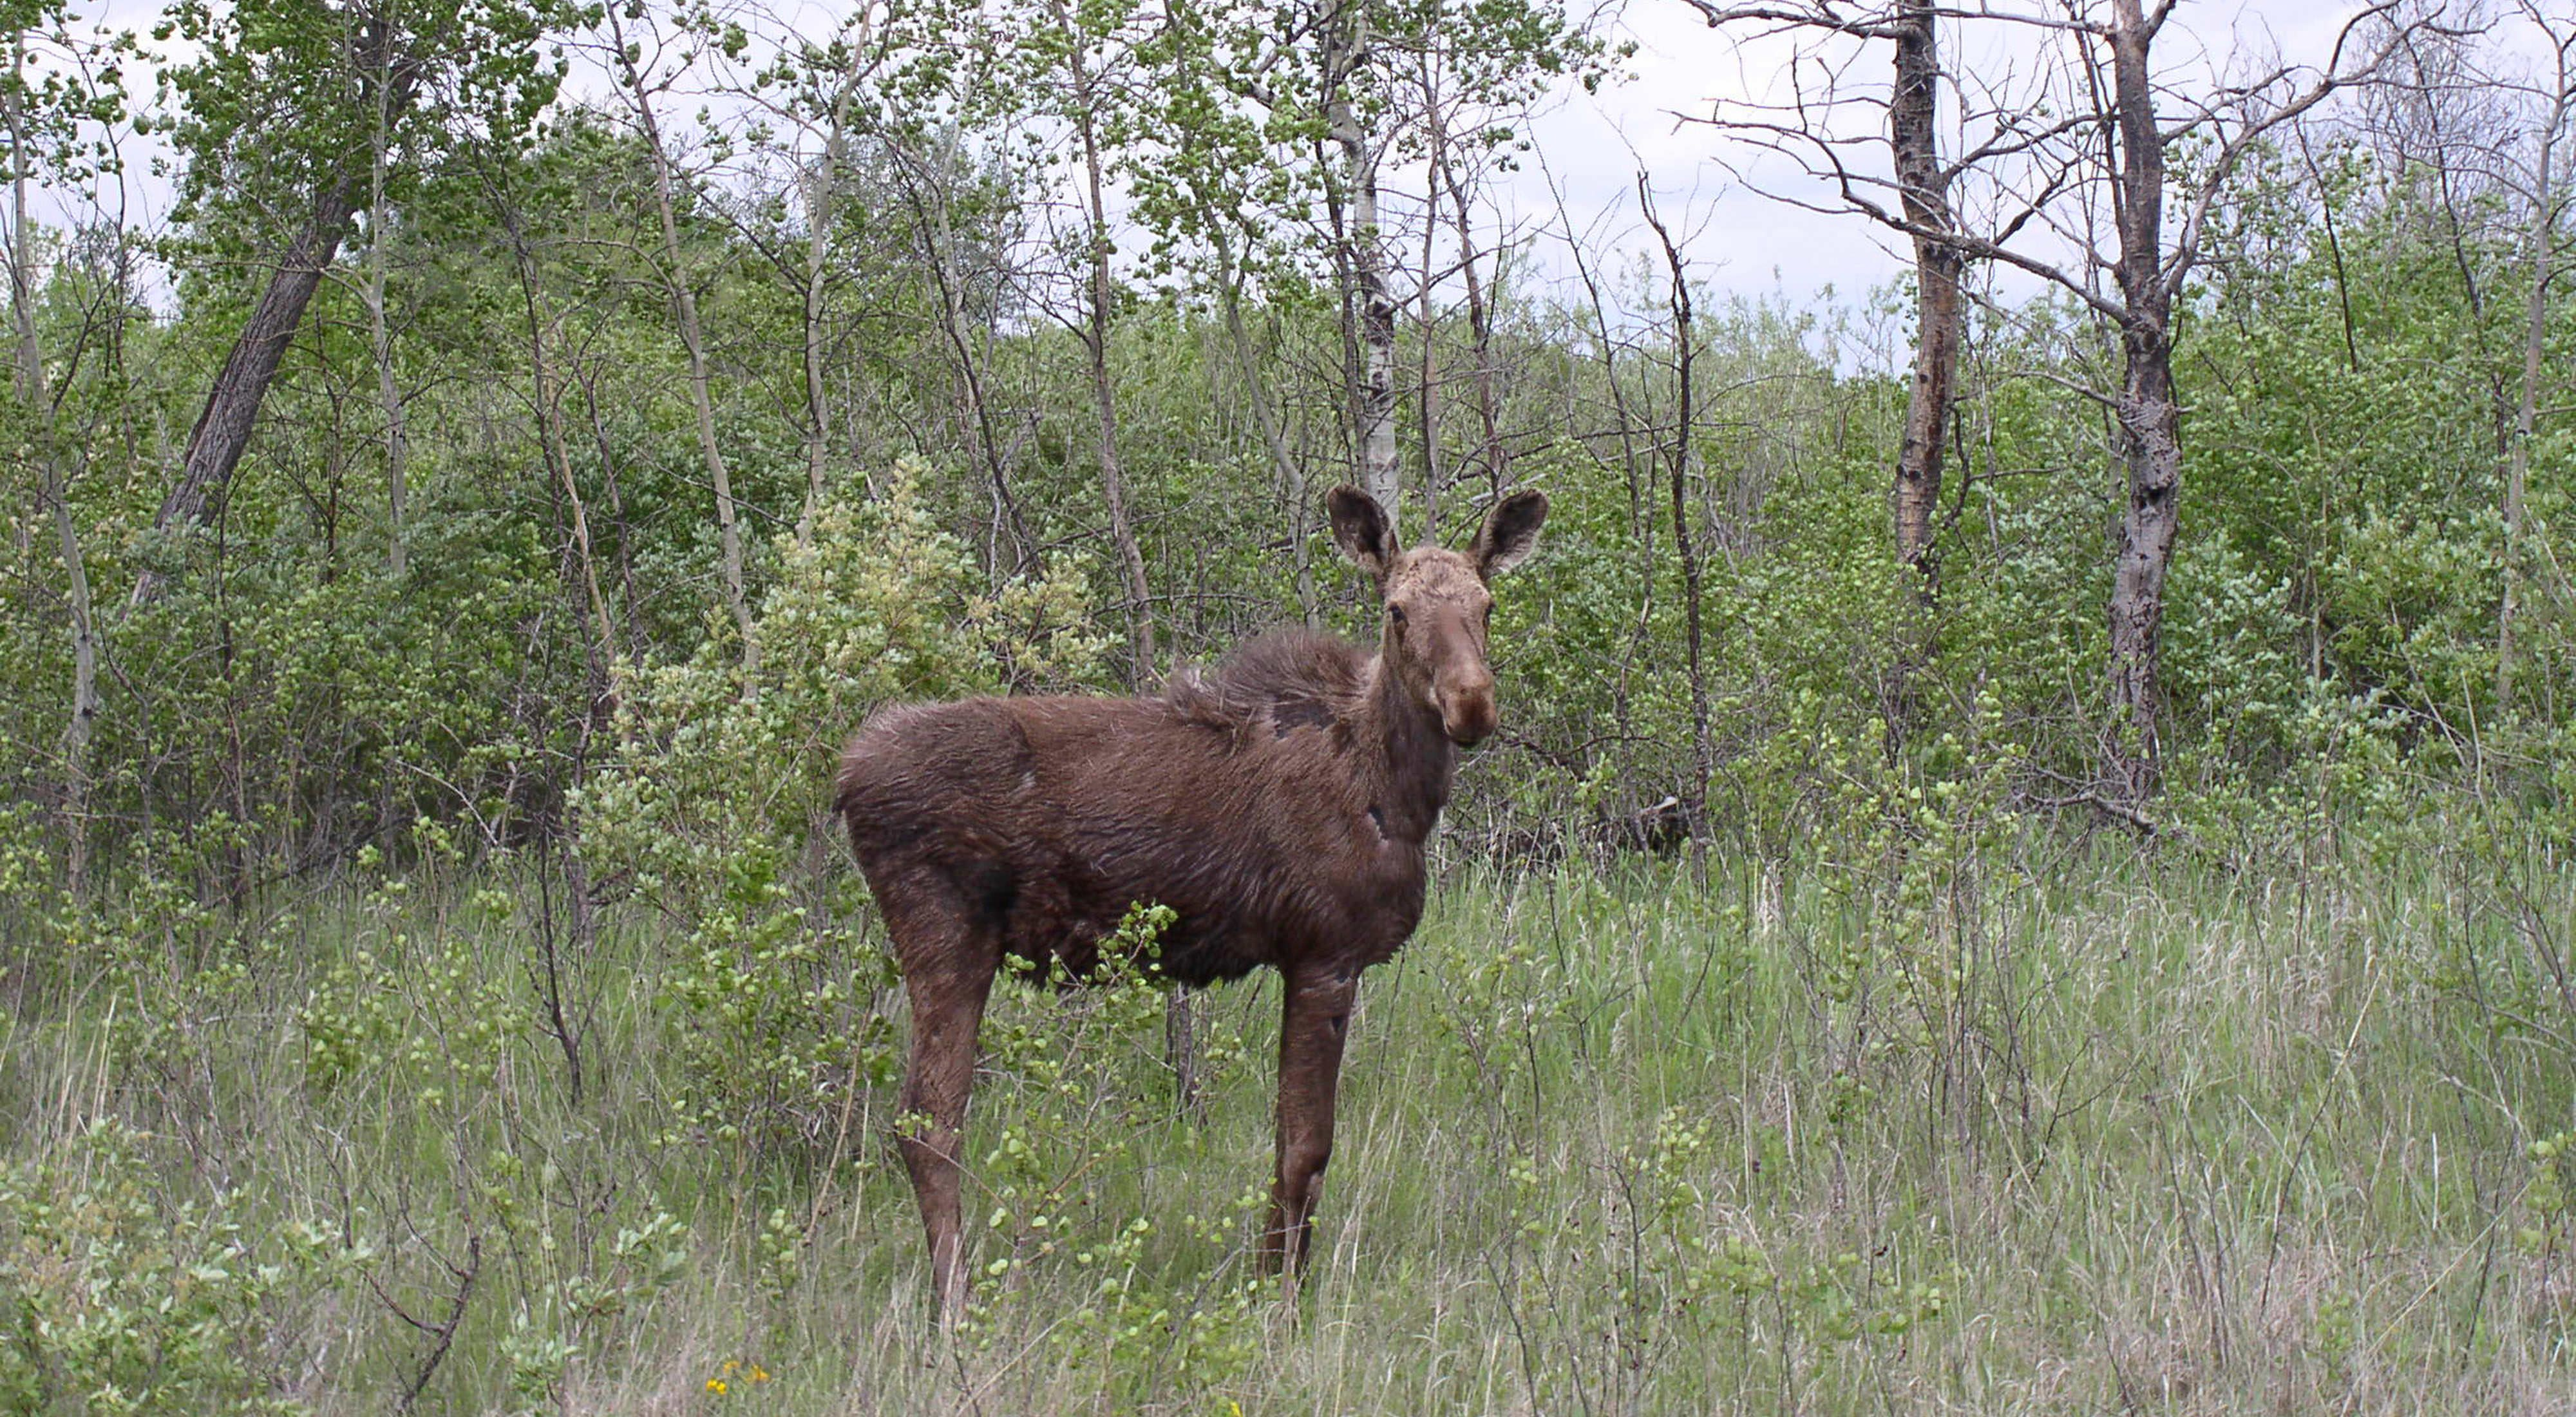 Lone moose at the Glacial Ridge Project for prairie and wetland restoration in northwestern Minnesota